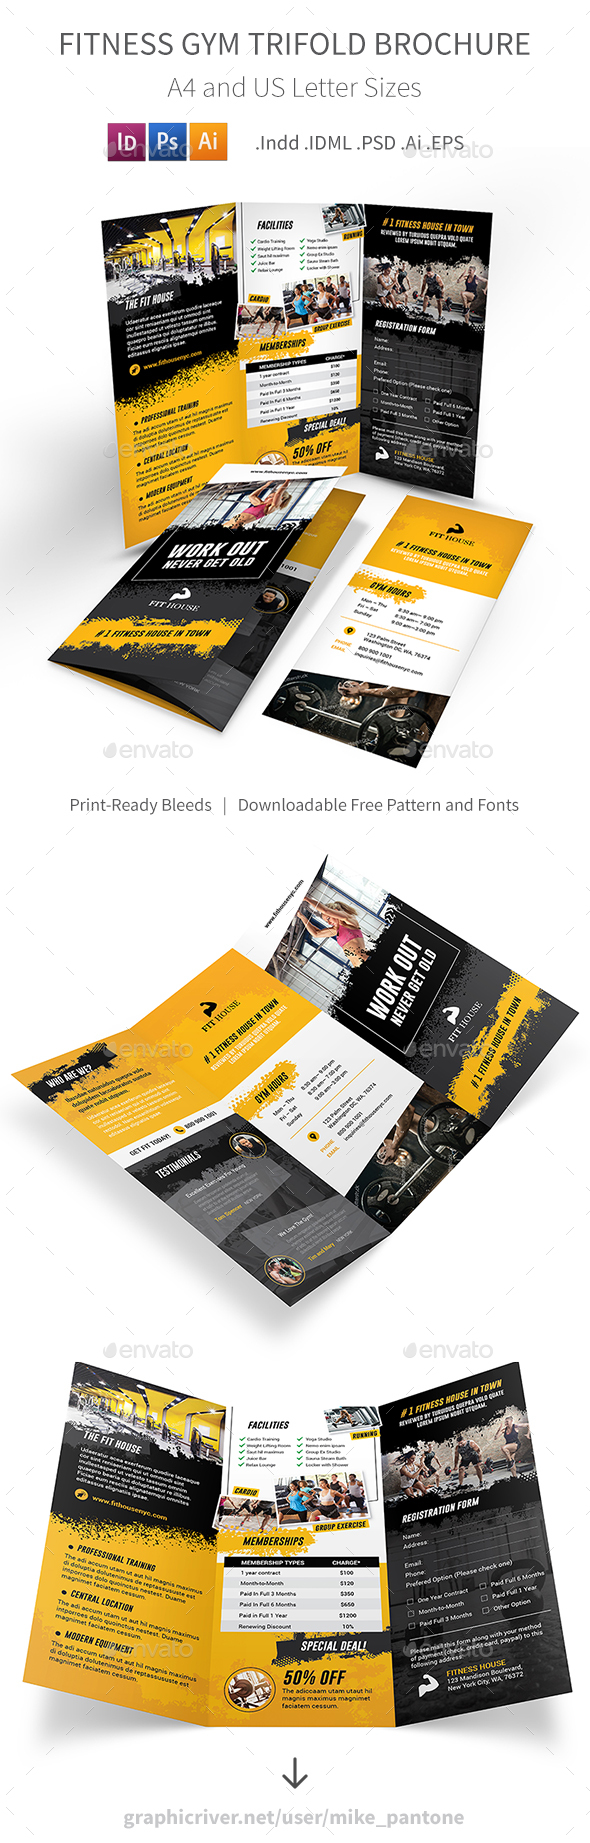 Fitness Gym Trifold Brochure 5 - Informational Brochures